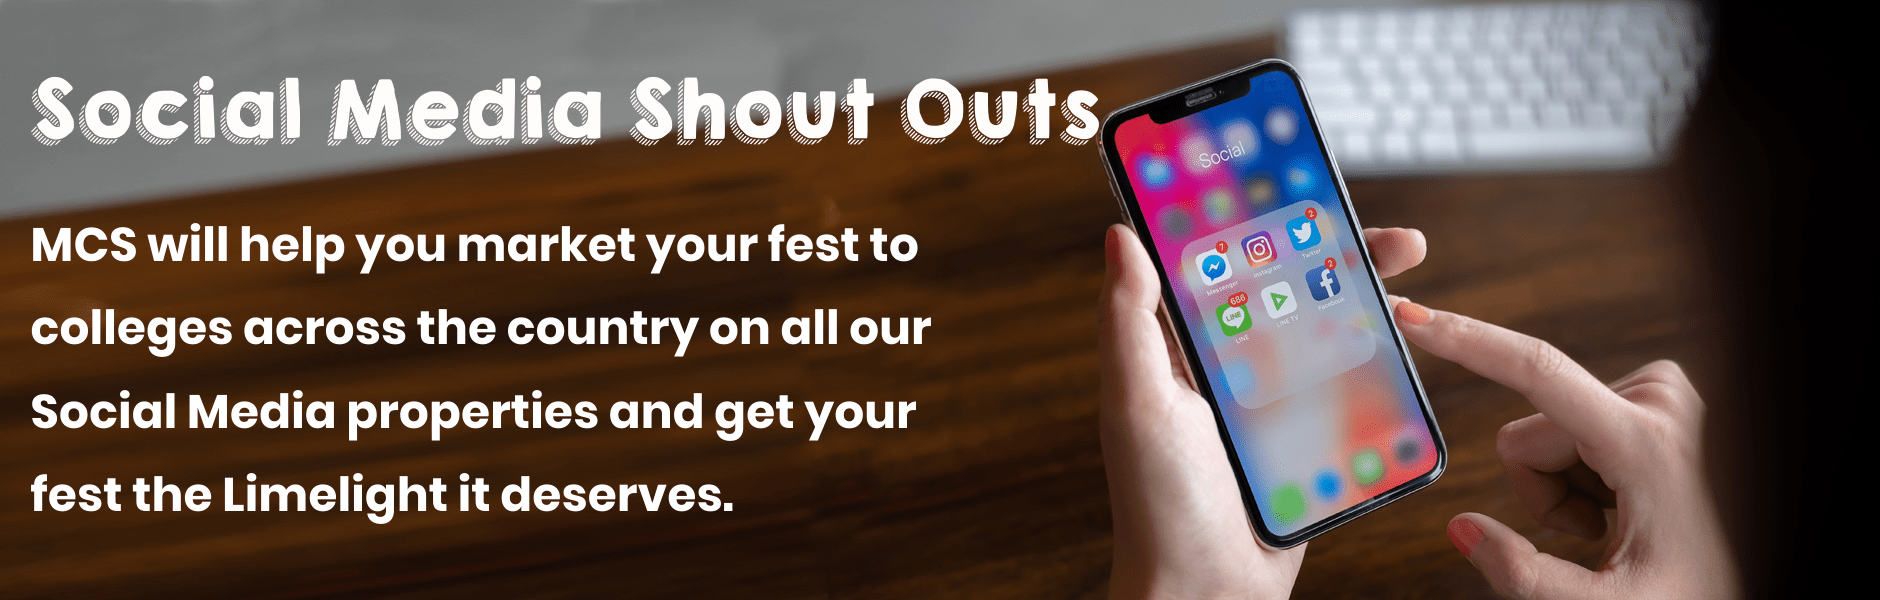 Social Media shout outs for your fest